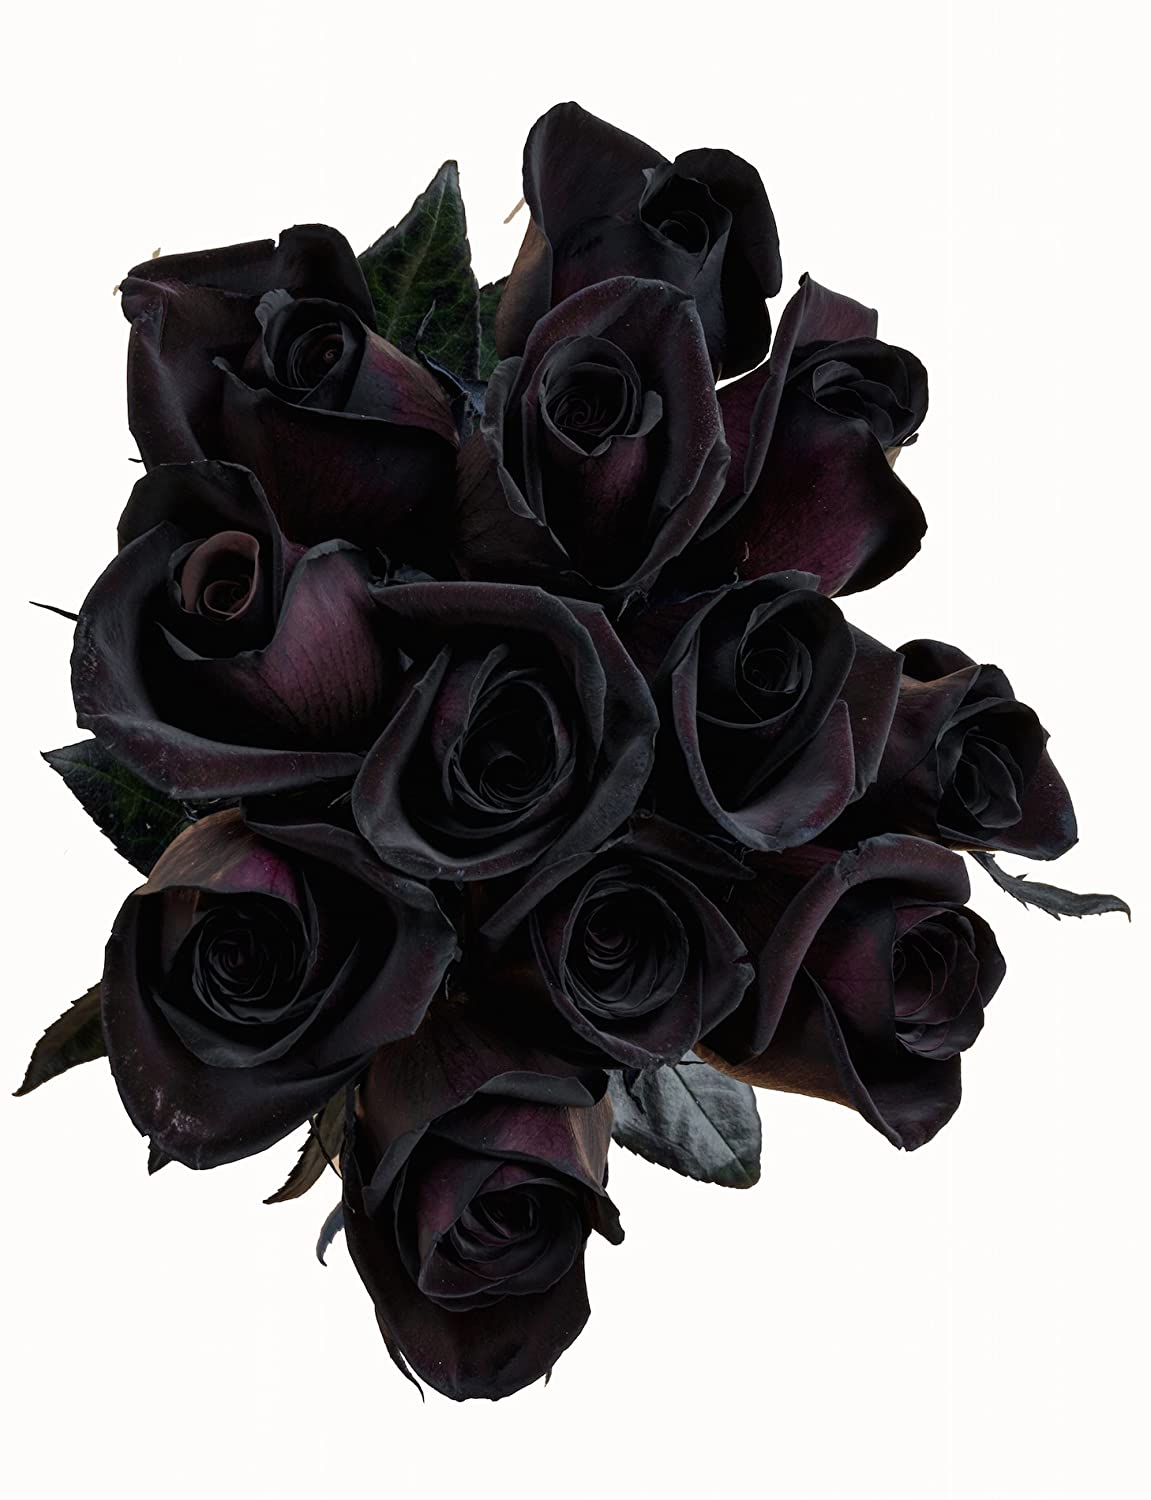 Amazon.com : Flower Explosion Black Roses Bouquet by Real Fresh ...